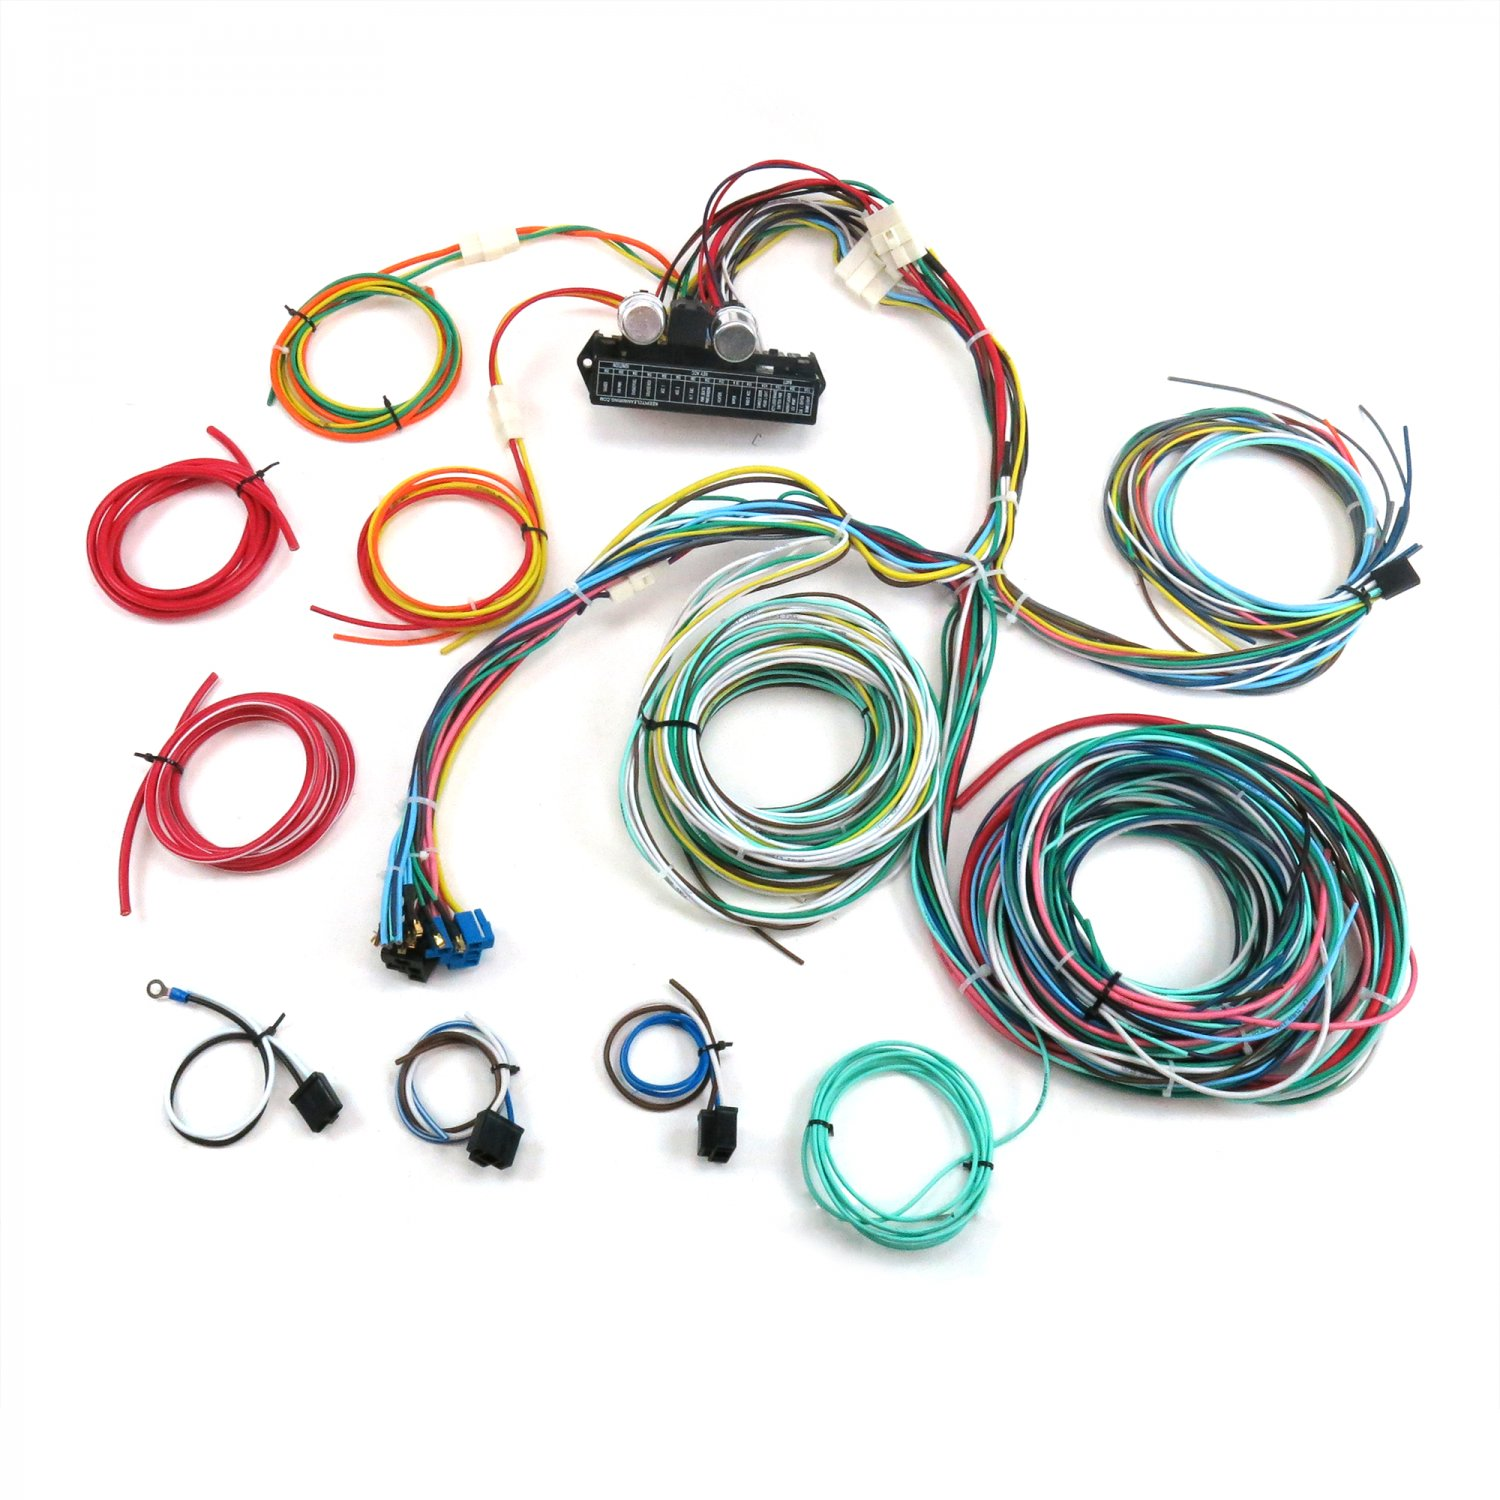 1950-1954 Chevy Car Complete Modern Update Re-Wiring Harness 12v  Conversion. Bar_Product_Description_C